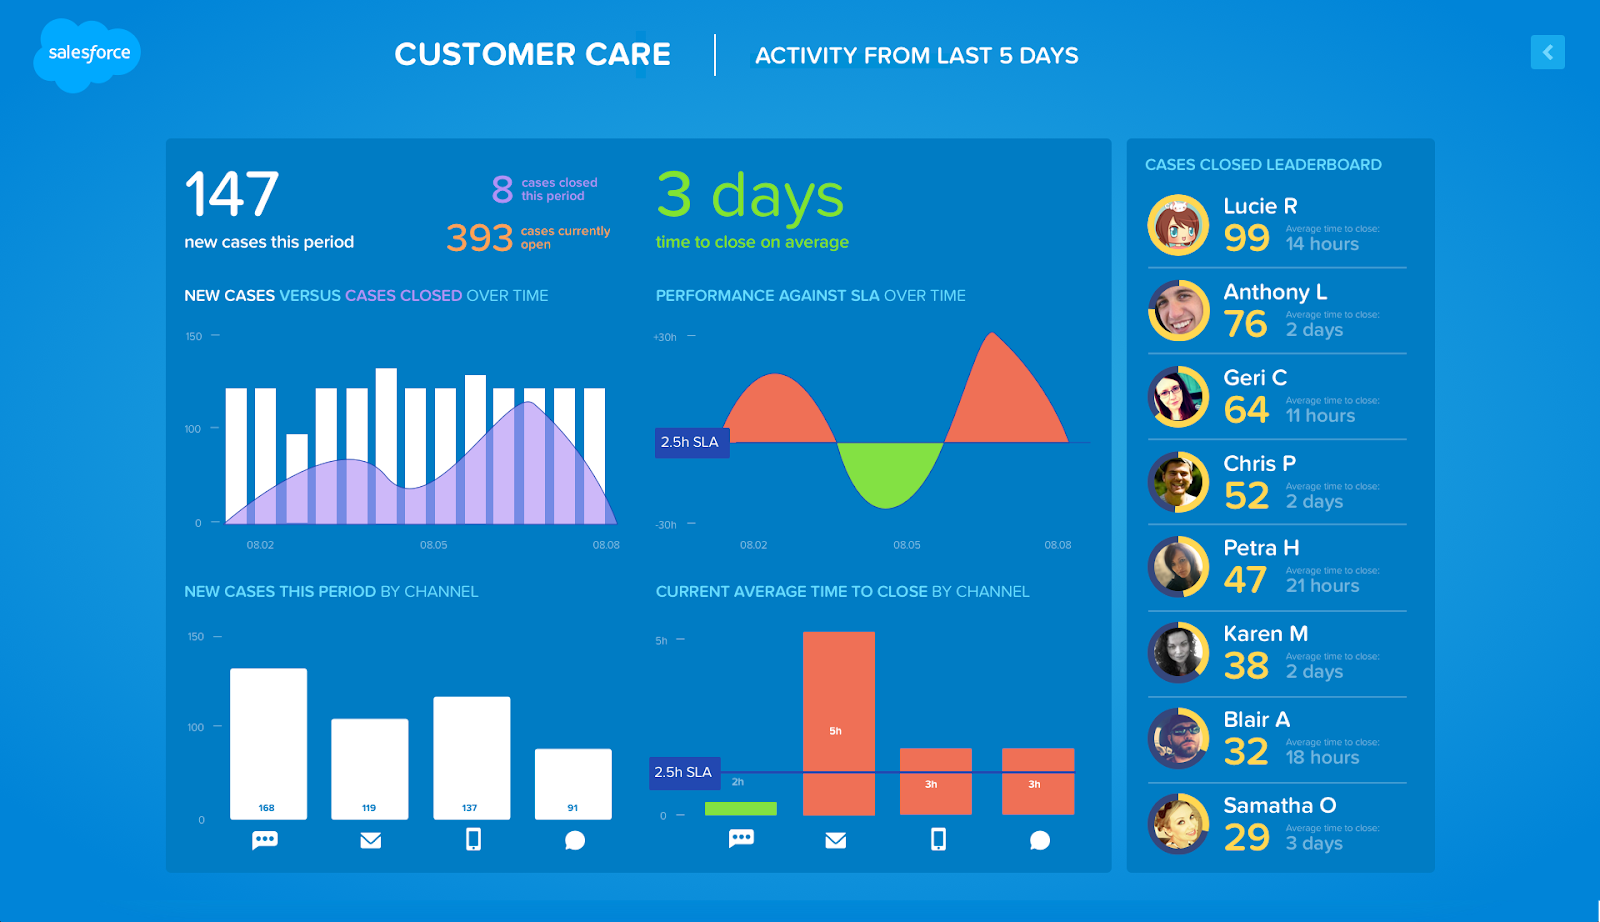 Salesforce Command Center, displaying customer care bar graphs and charts, and a leaderboard list of service agents